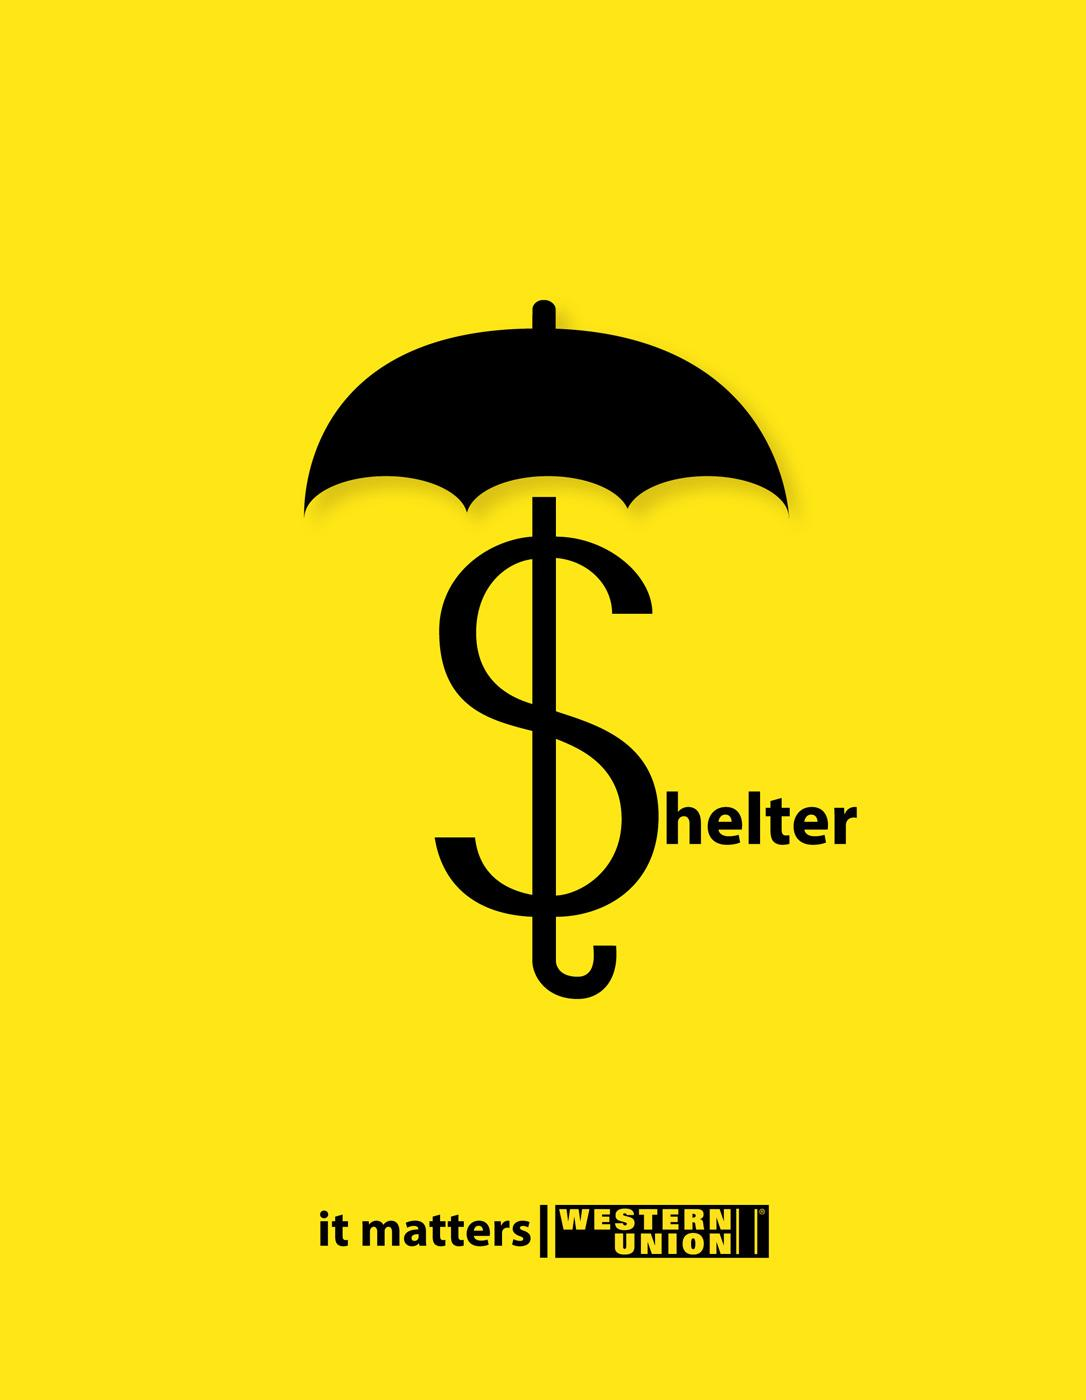 Western Union Print Ad -  Shelter